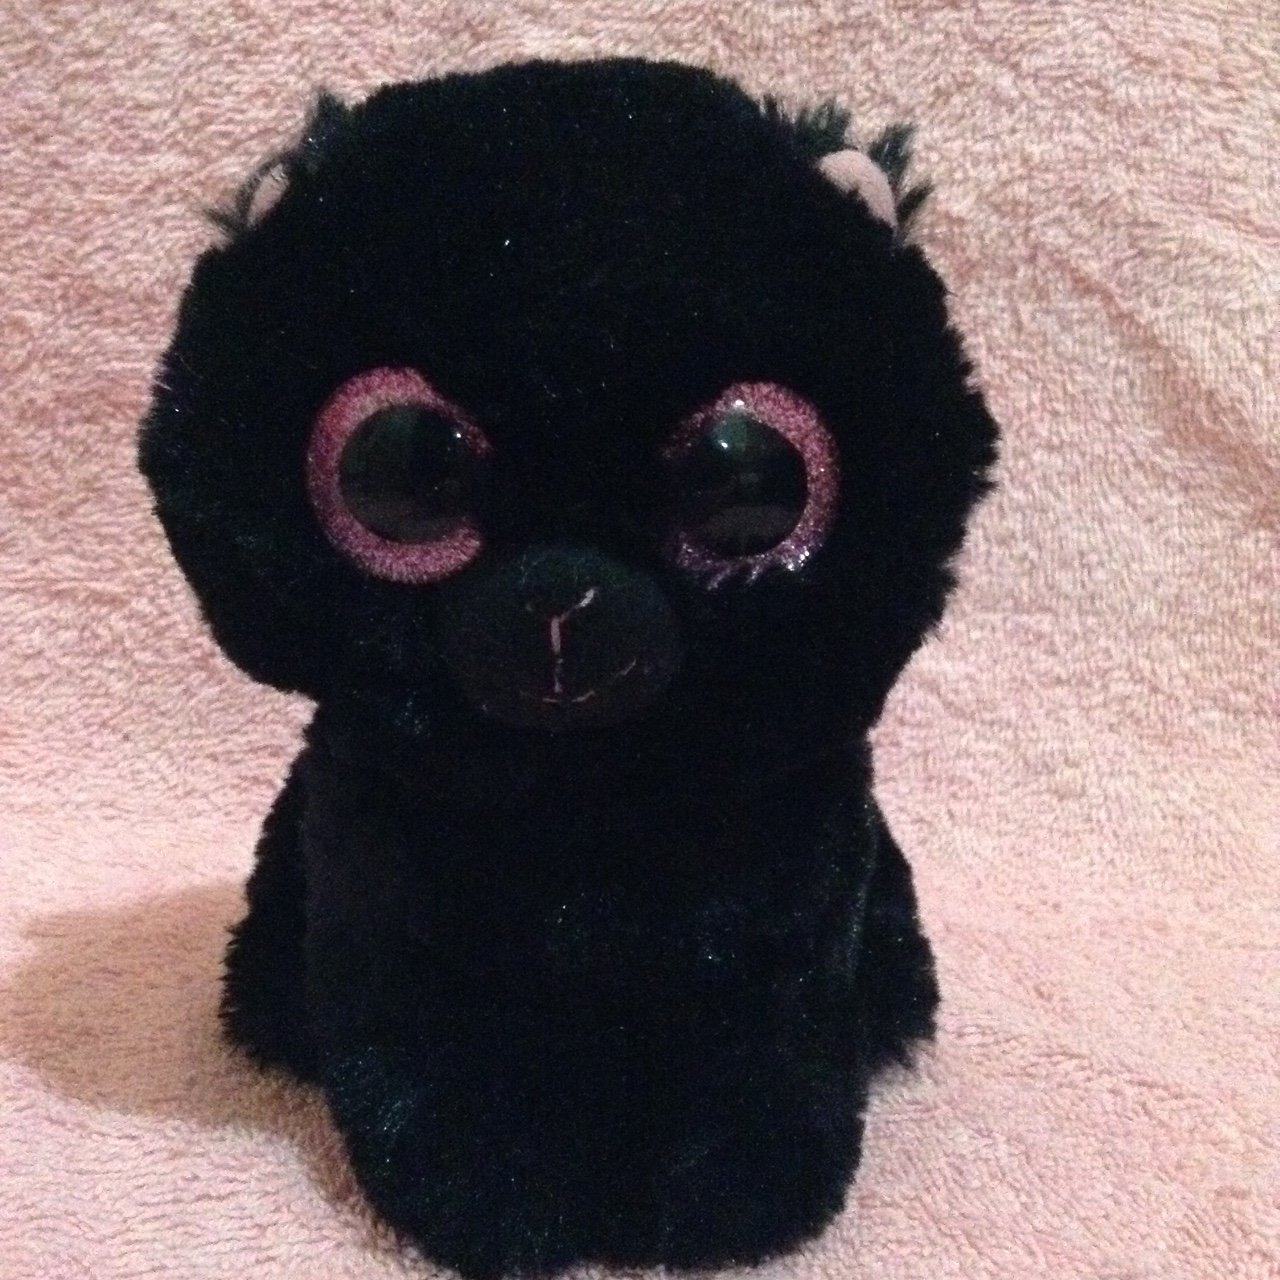 Really cute beanie boo plushy! She s all black with pink and - Depop a5e81cf7600